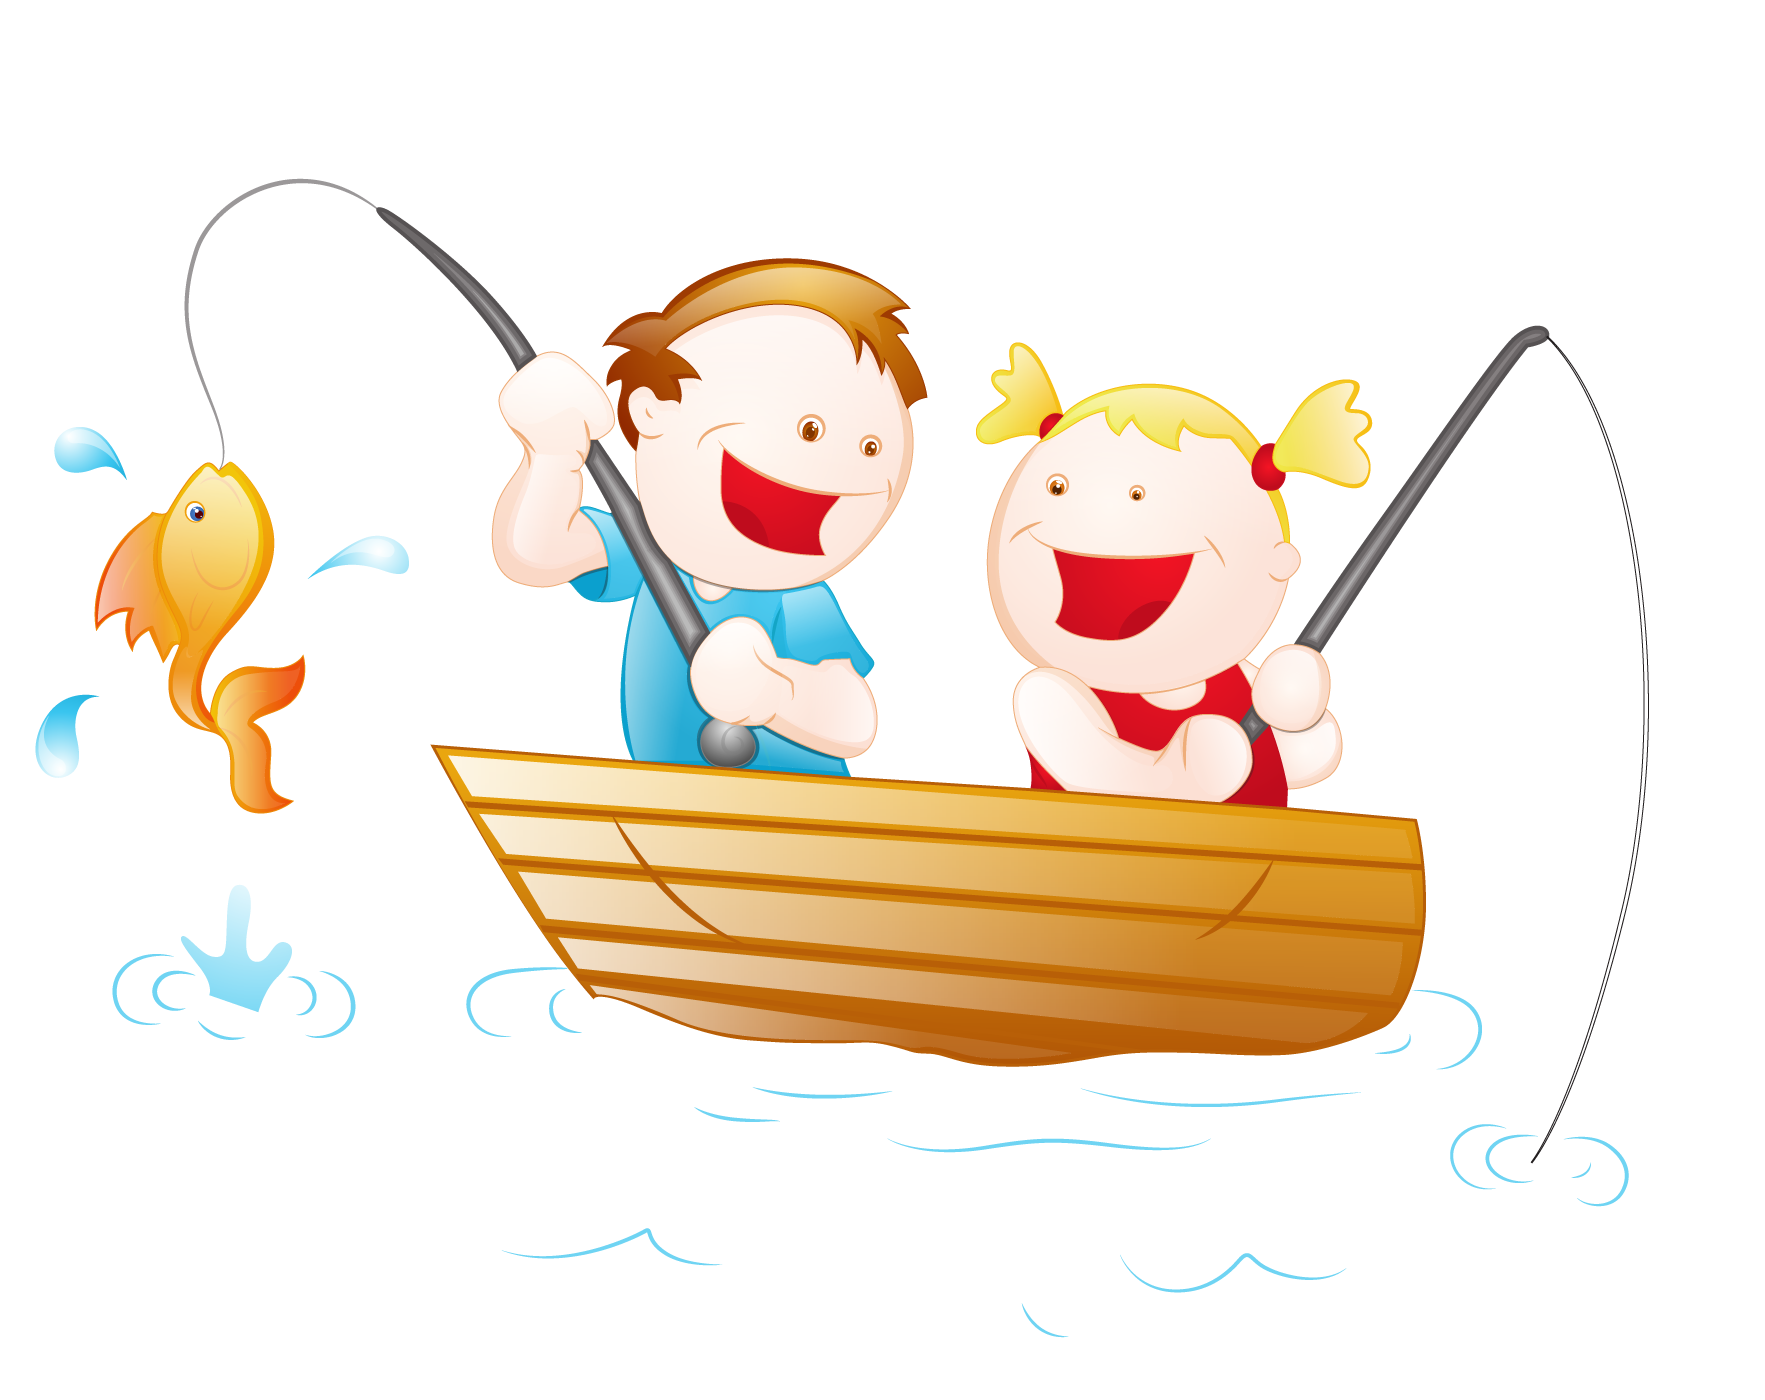 Fishing cartoon girl clip. Fisherman clipart child